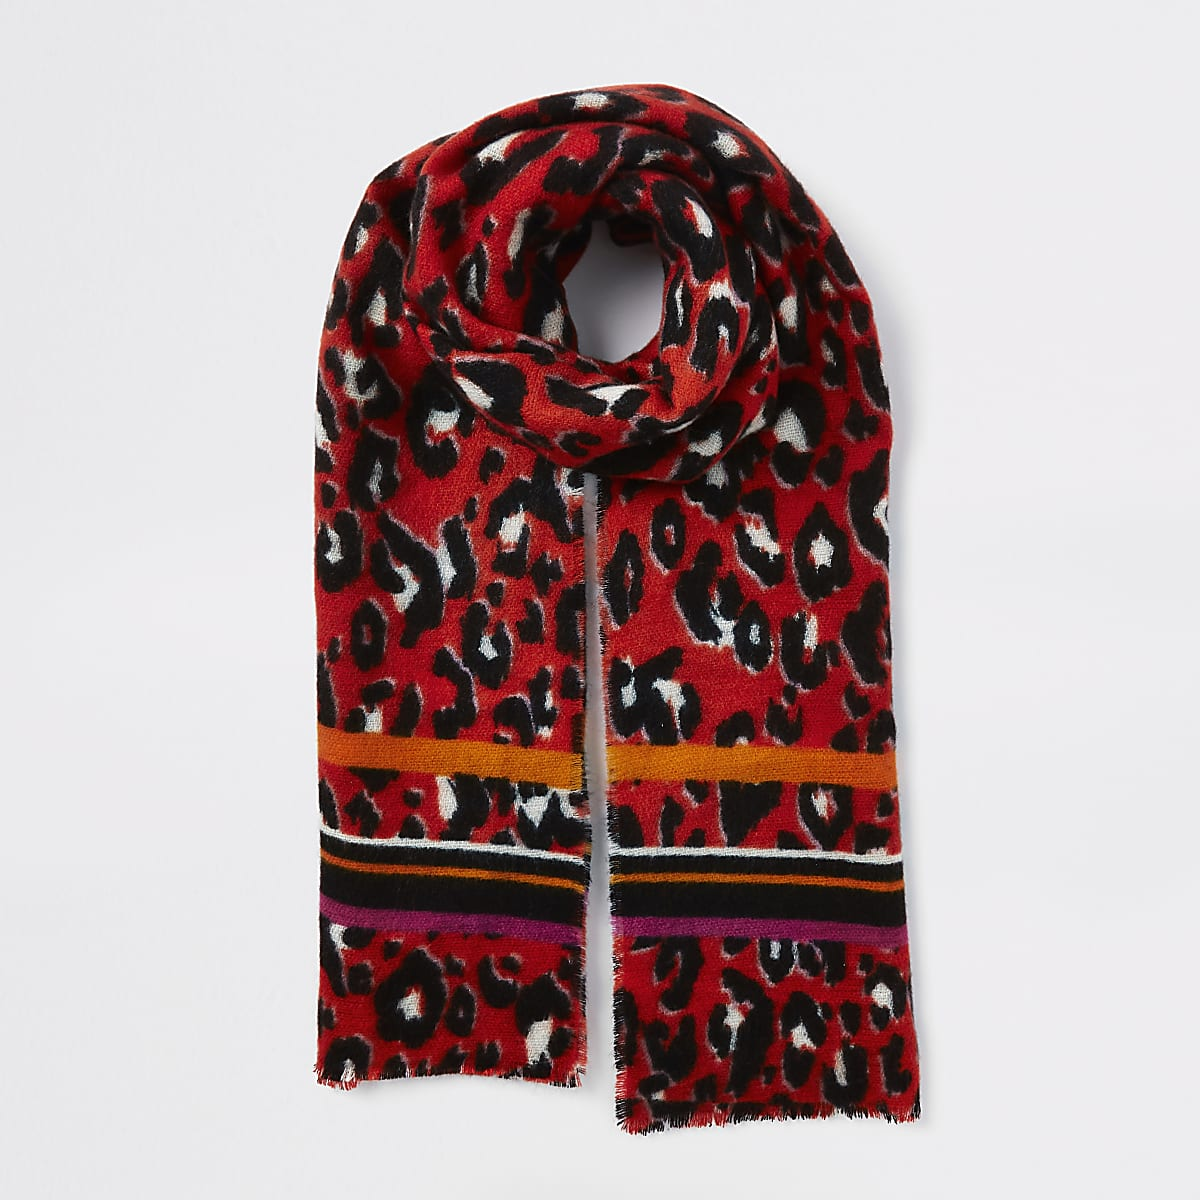 081d9f5817d46 Red leopard print scarf - Scarves - Accessories - women